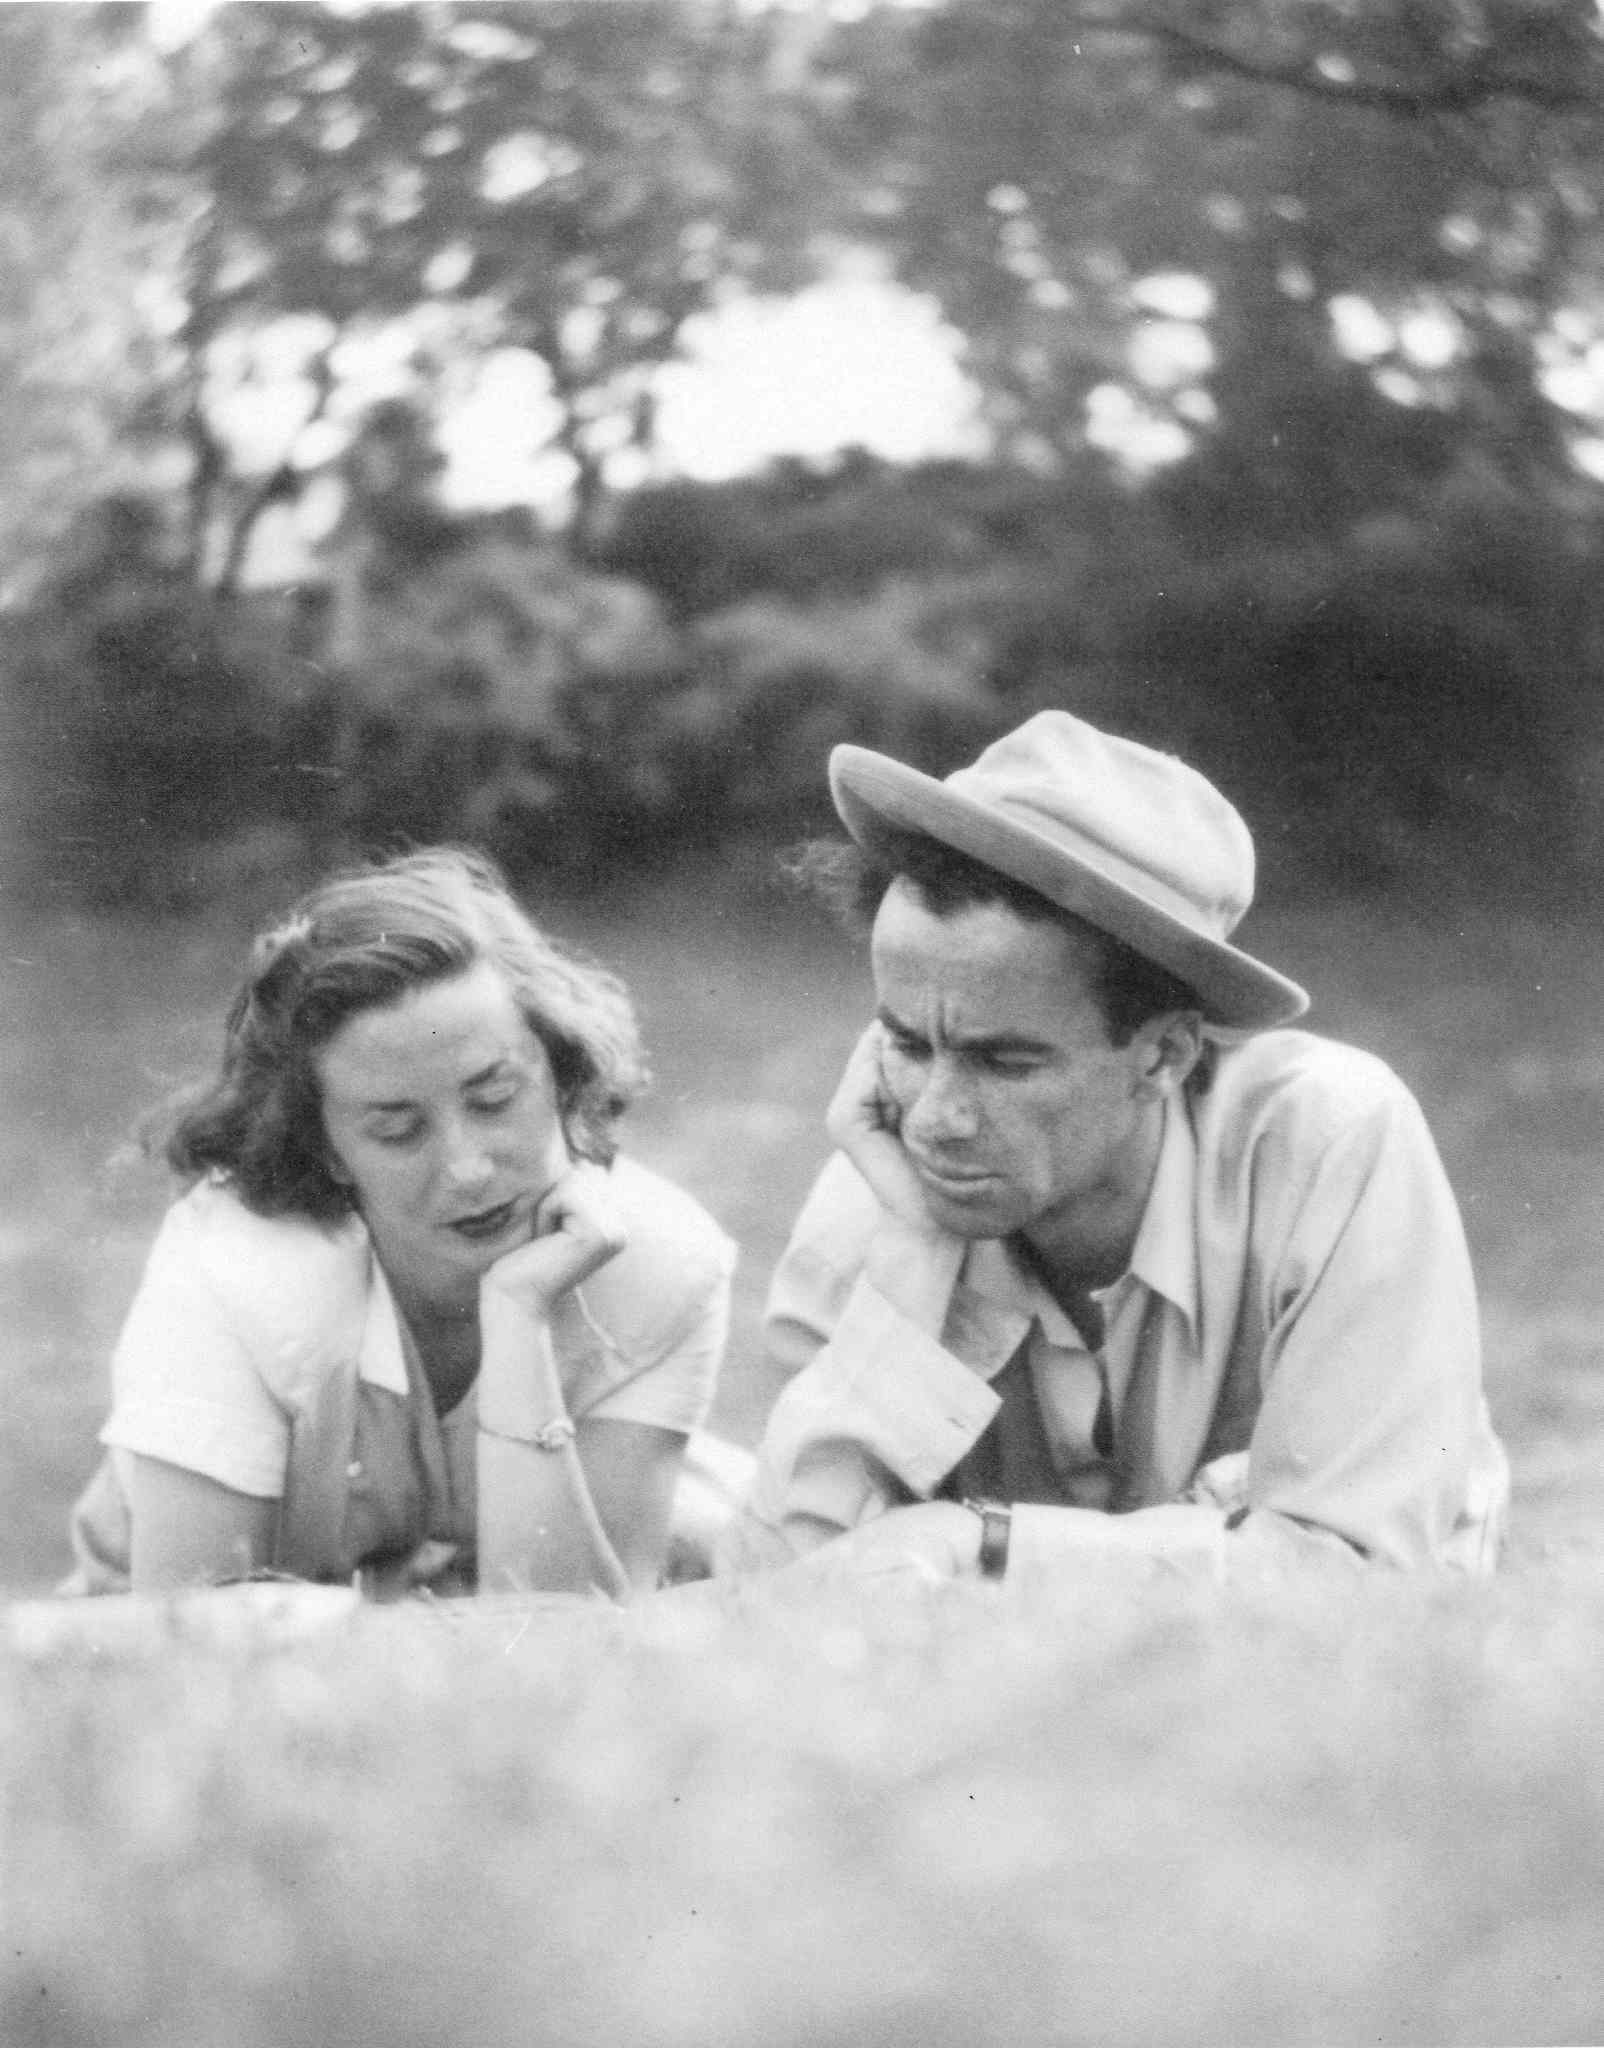 Val Werier and his wife, Eve, read together in Kildonan Park sometime in the 1940s. Tragically, Eve was diagnosed with a brain tumour at age 40 and died in 1974.